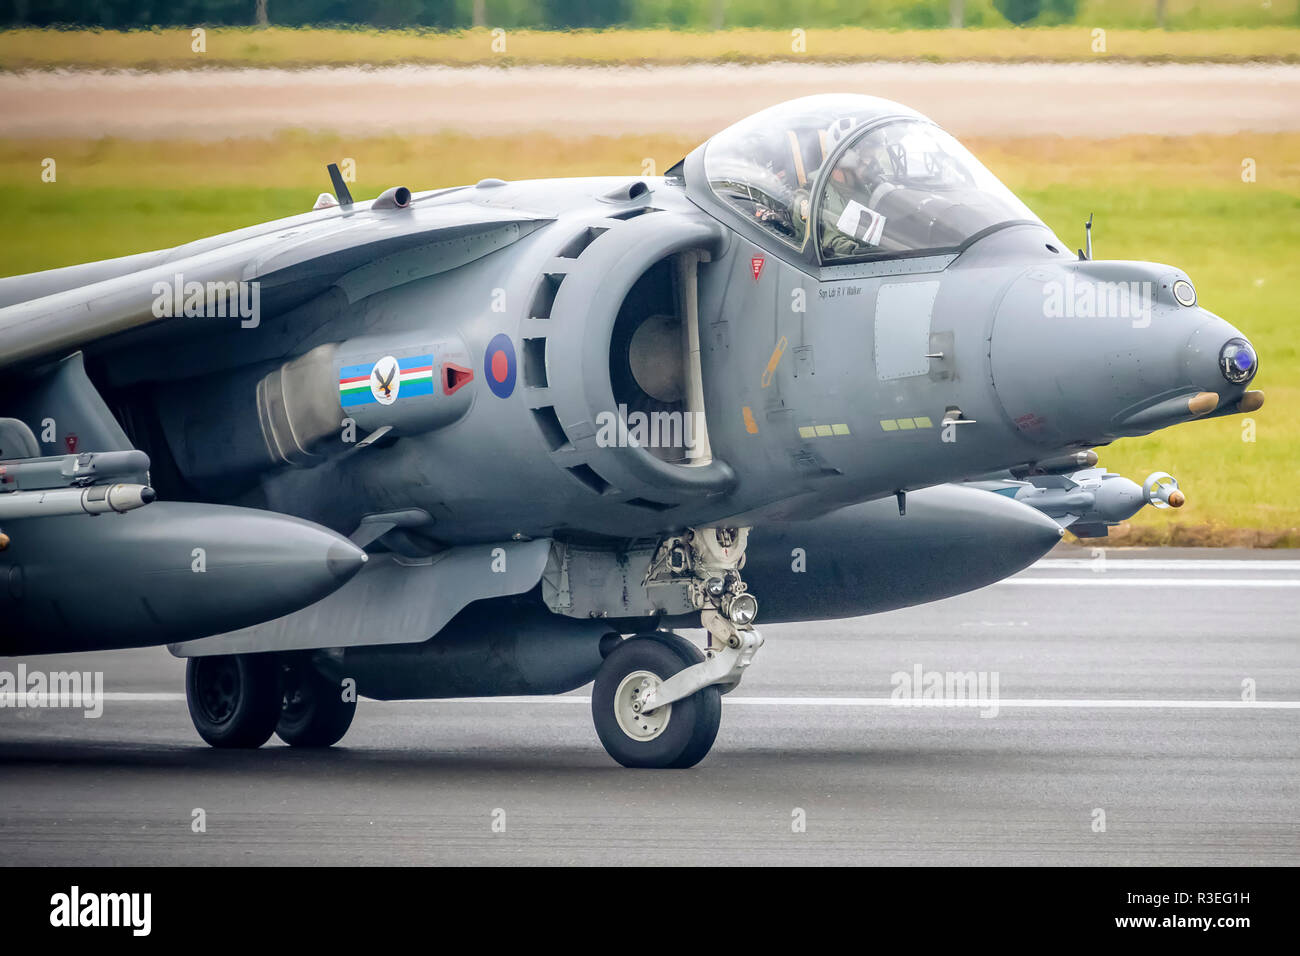 Raf Harrier Stock Photos & Raf Harrier Stock Images - Alamy